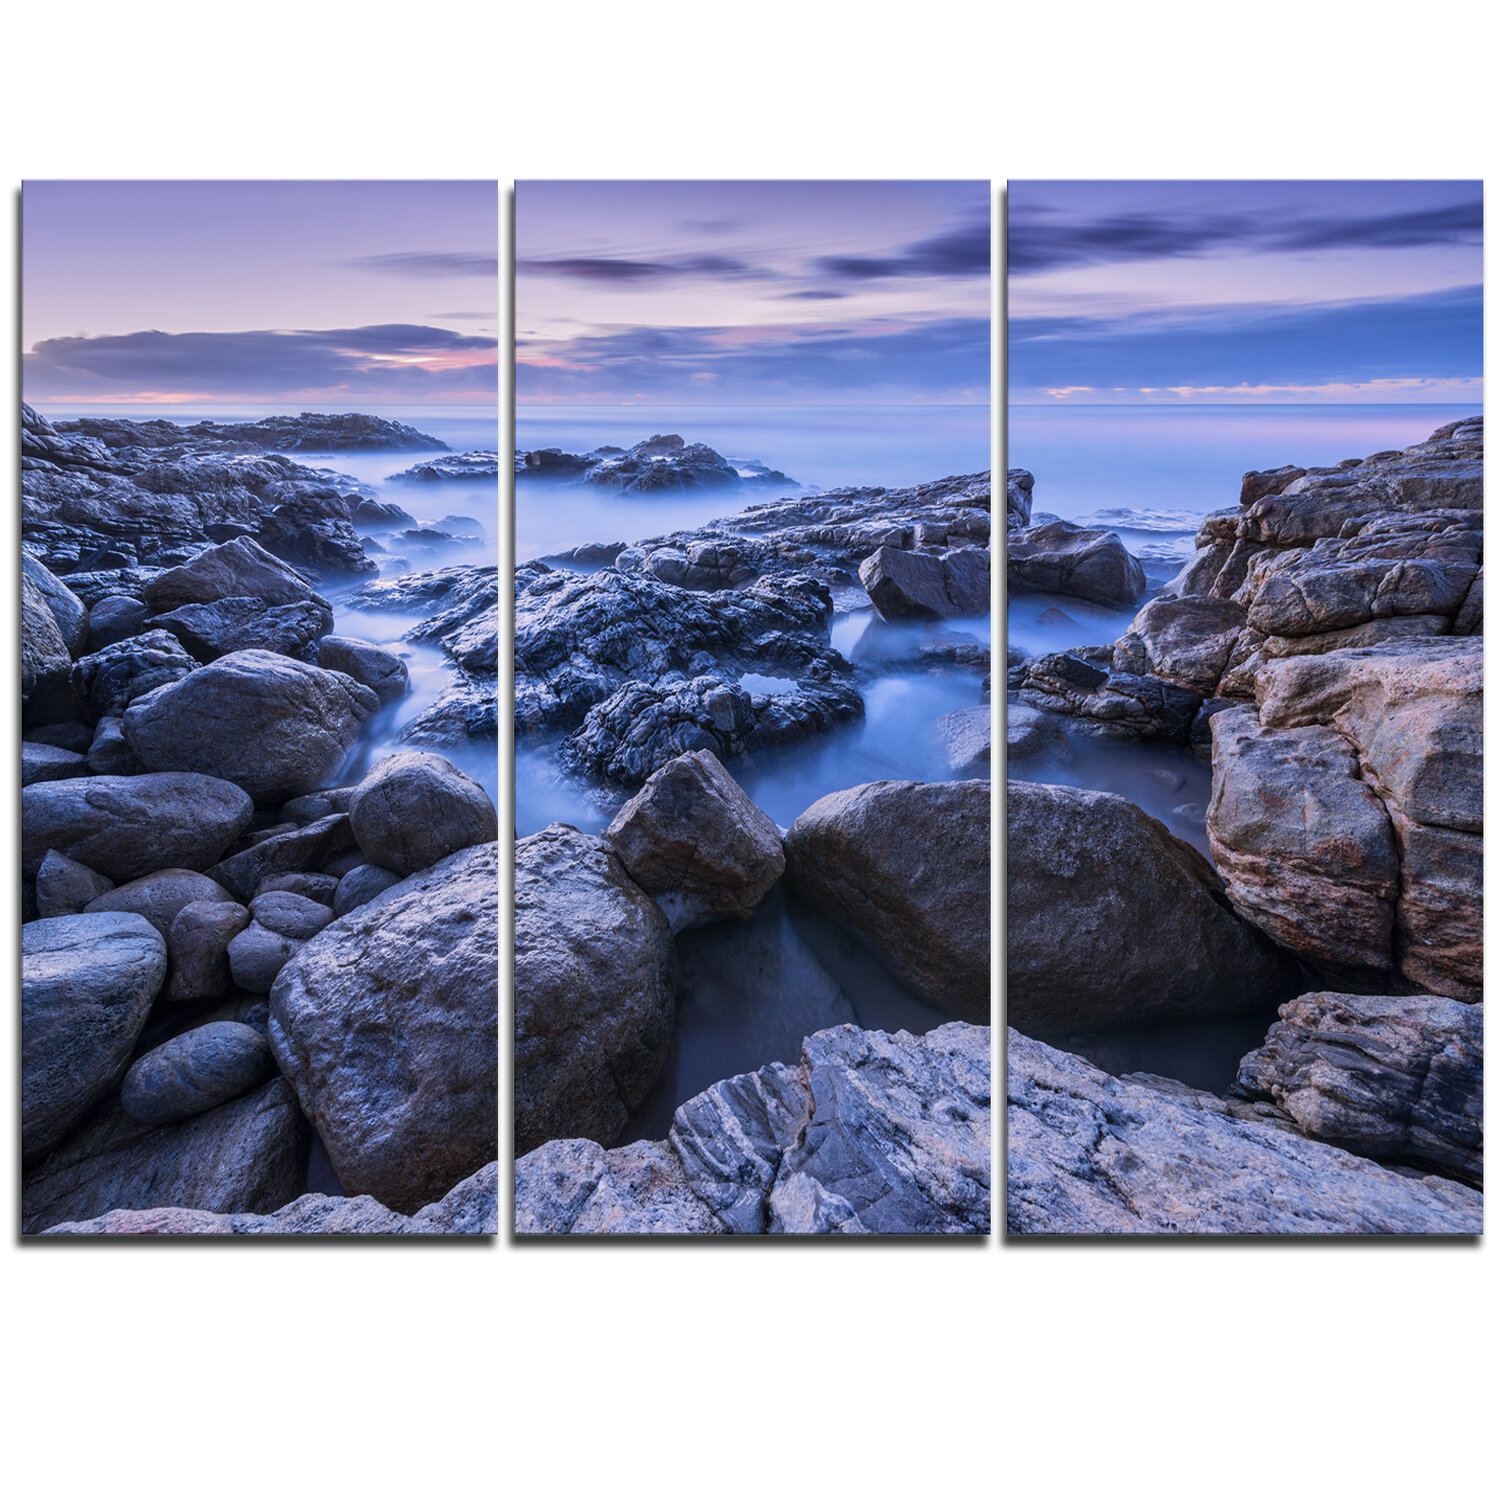 Designart Rocky Blue Seashore In Morning 3 Piece Graphic Art On Wrapped Canvas Set Wayfair